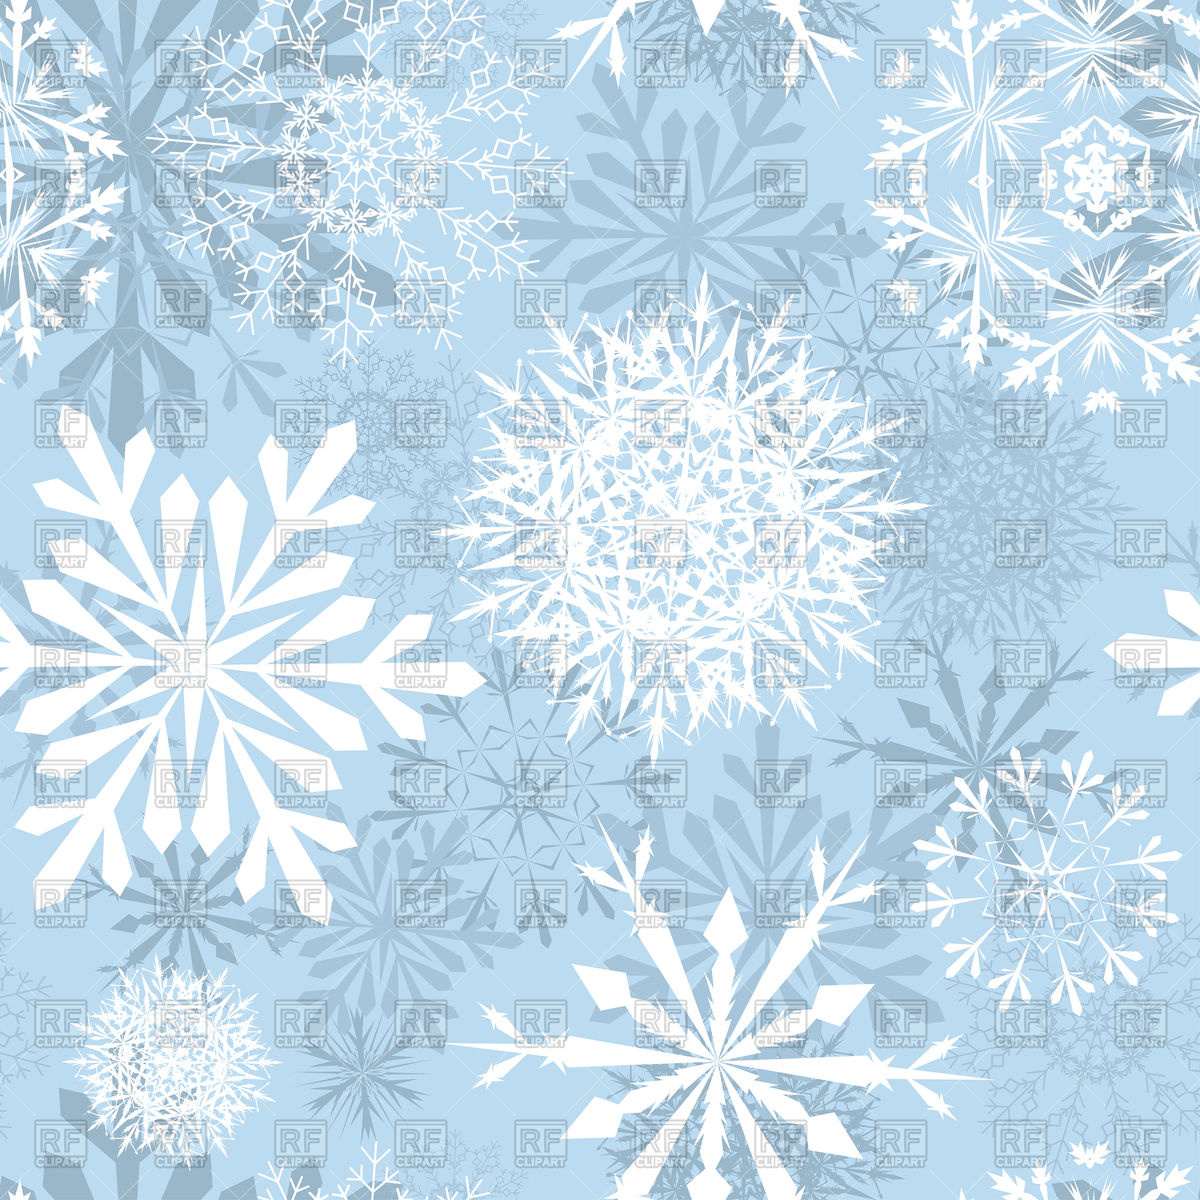 Seamless blue winter background with snowflakes Vector Image of 1200x1200